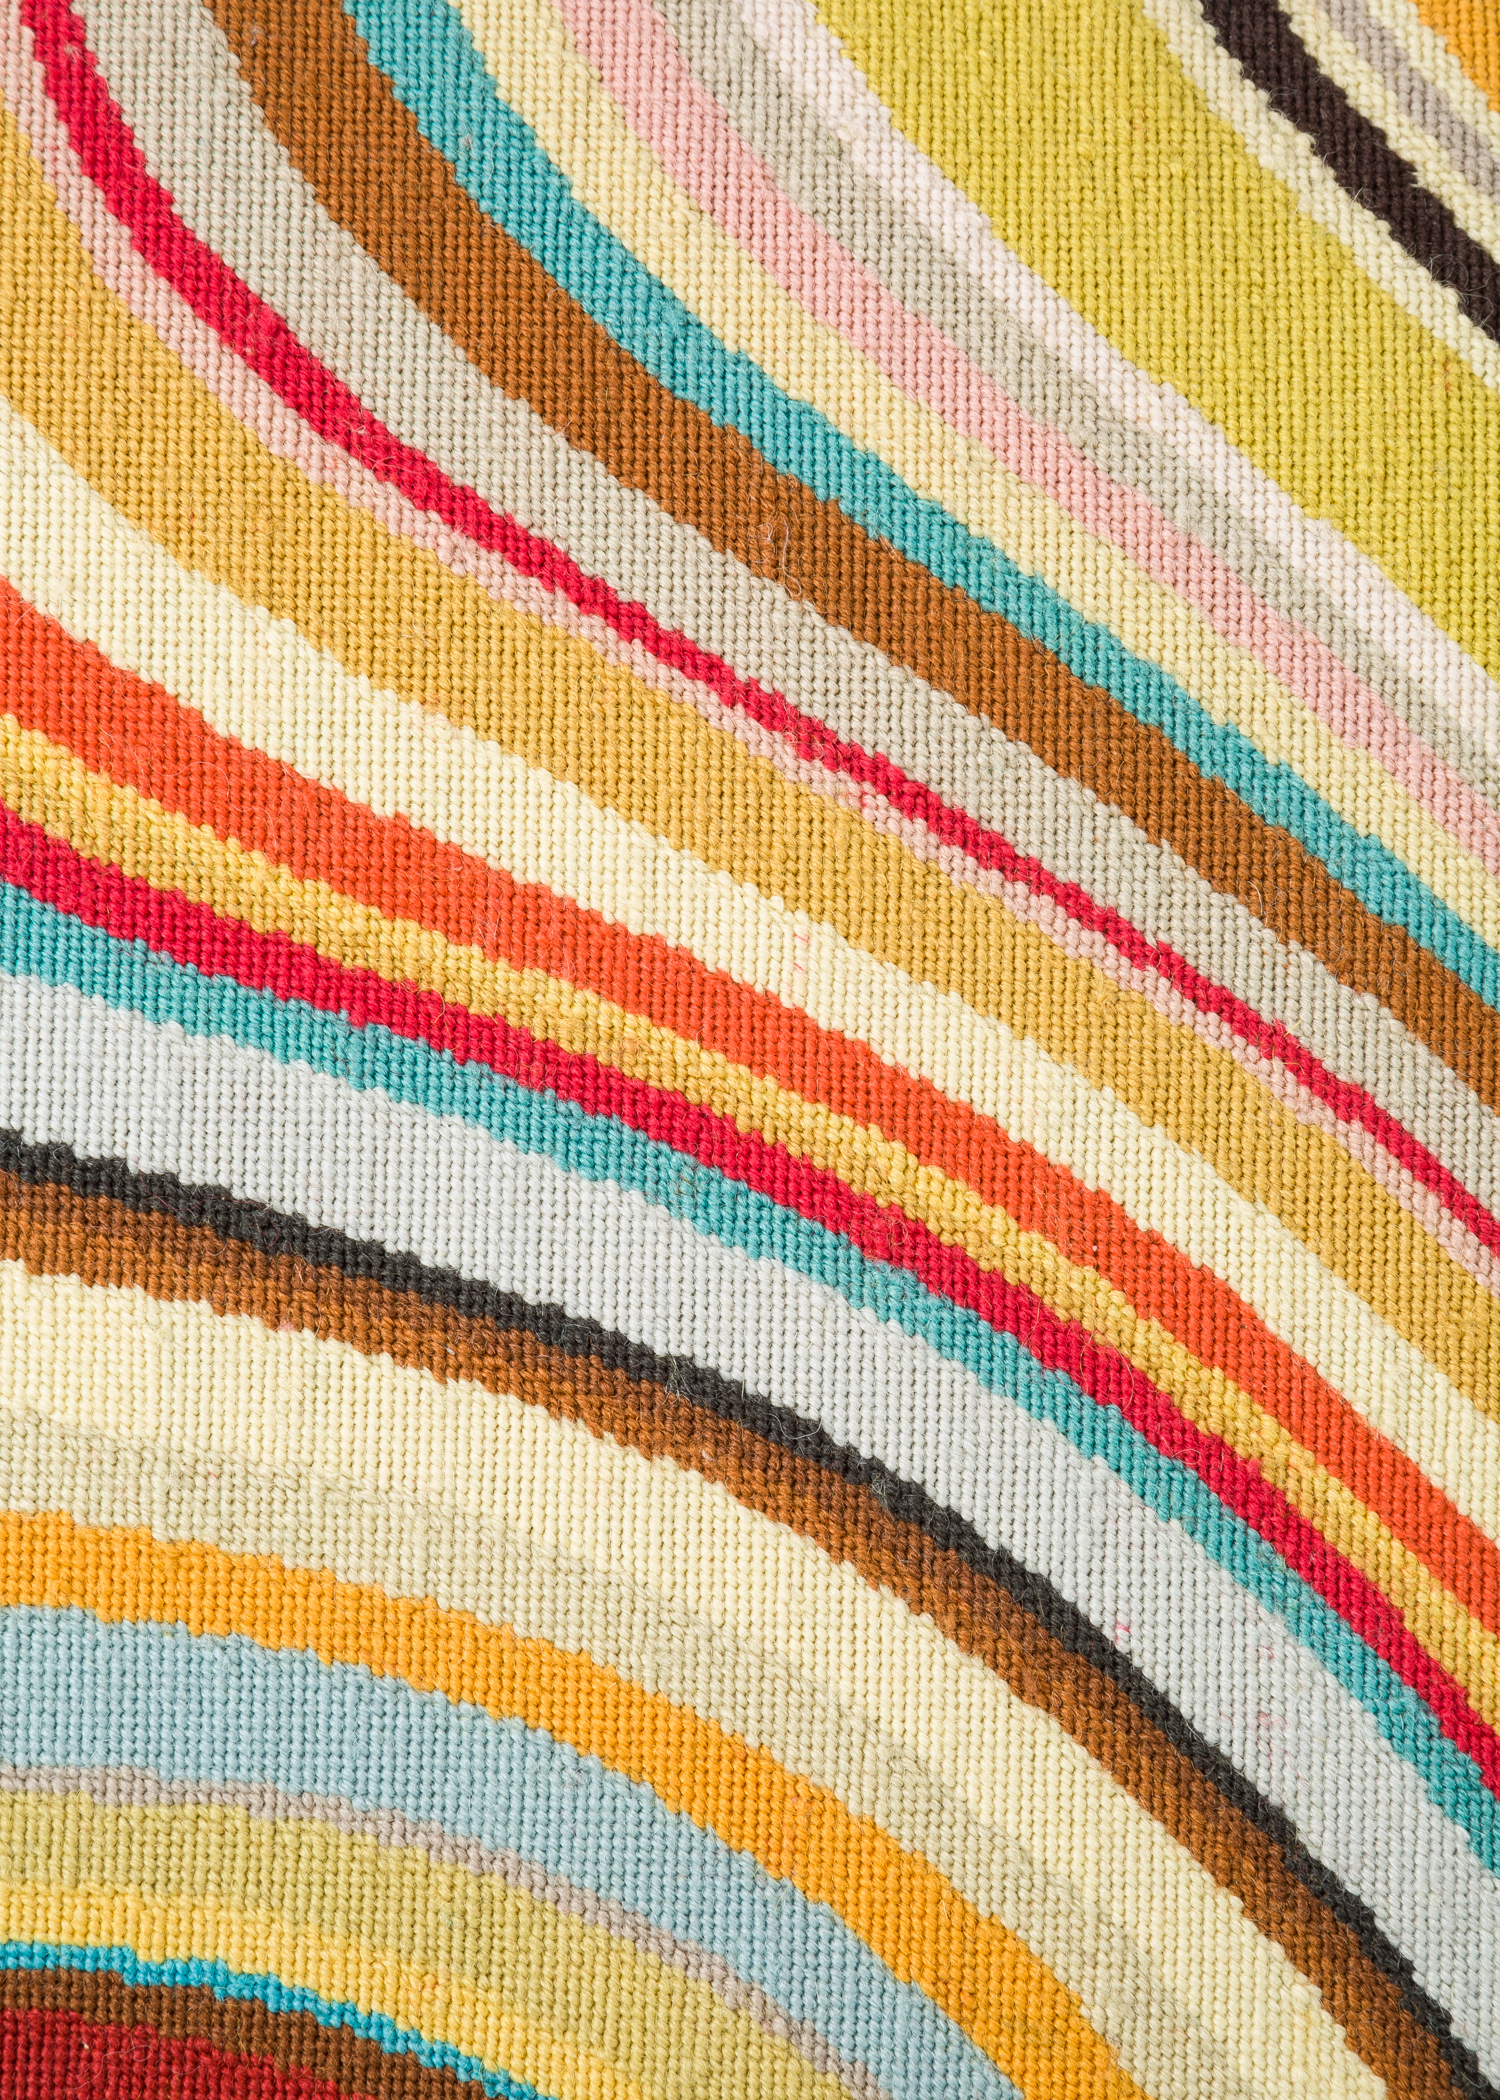 Paul Smith For The Rug Company Swirl Cushion Paul Smith